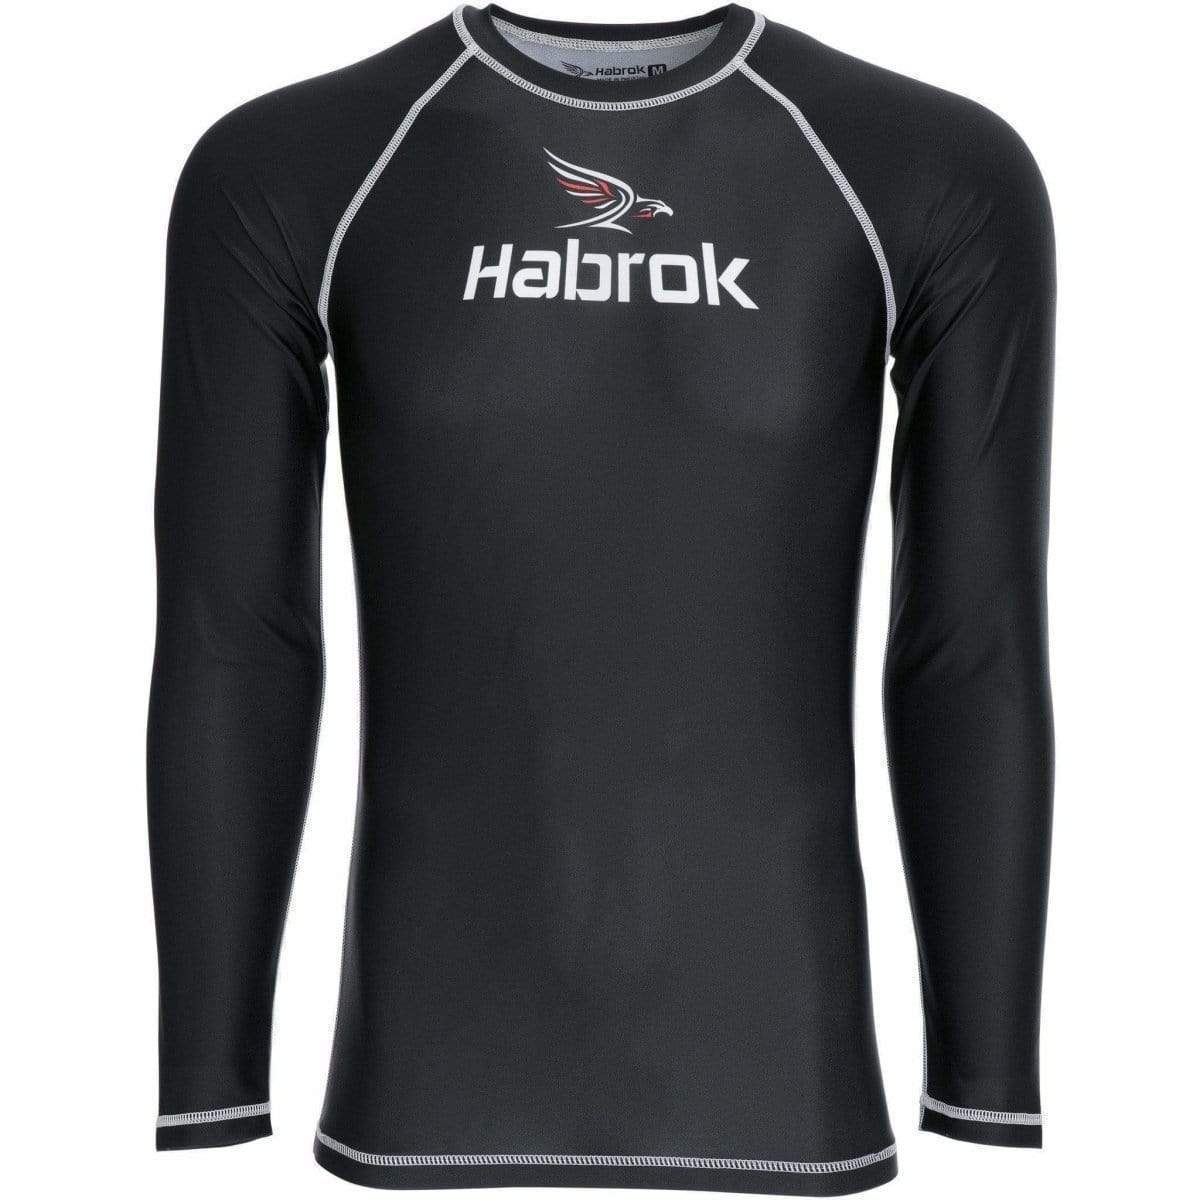 Habrok Rash Guard S / Black Performance Rash Guard | Men Performance Rash Guard | Habrok